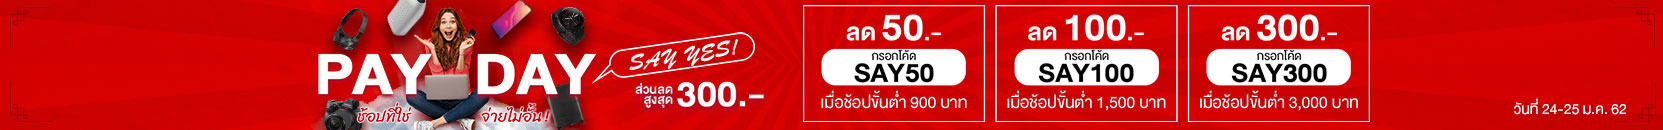 PAYDAY SAY YES (24-25 Jan 19)